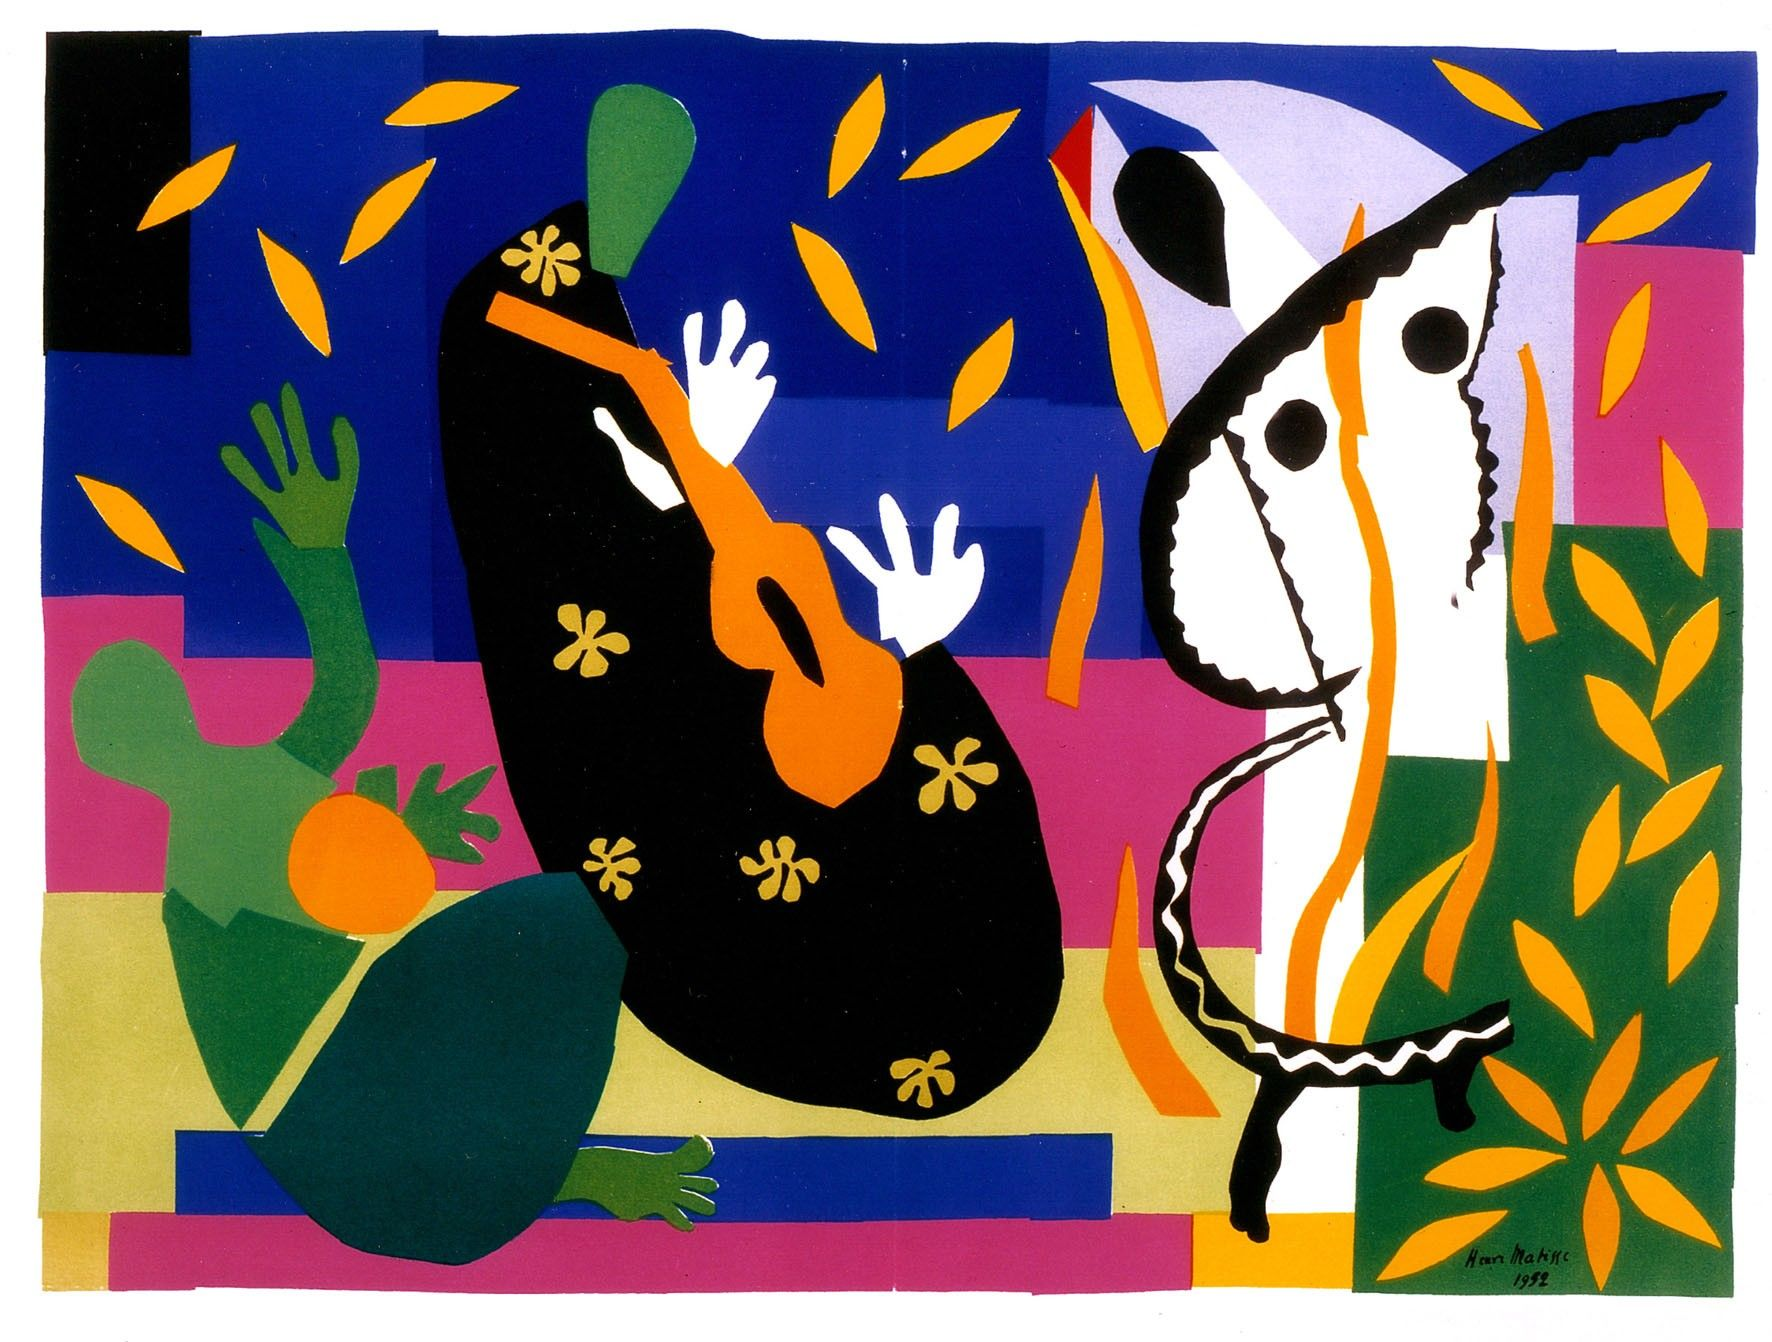 Fabuleux henri matisse collages - Google Search | collage cut-out stencil  DQ51